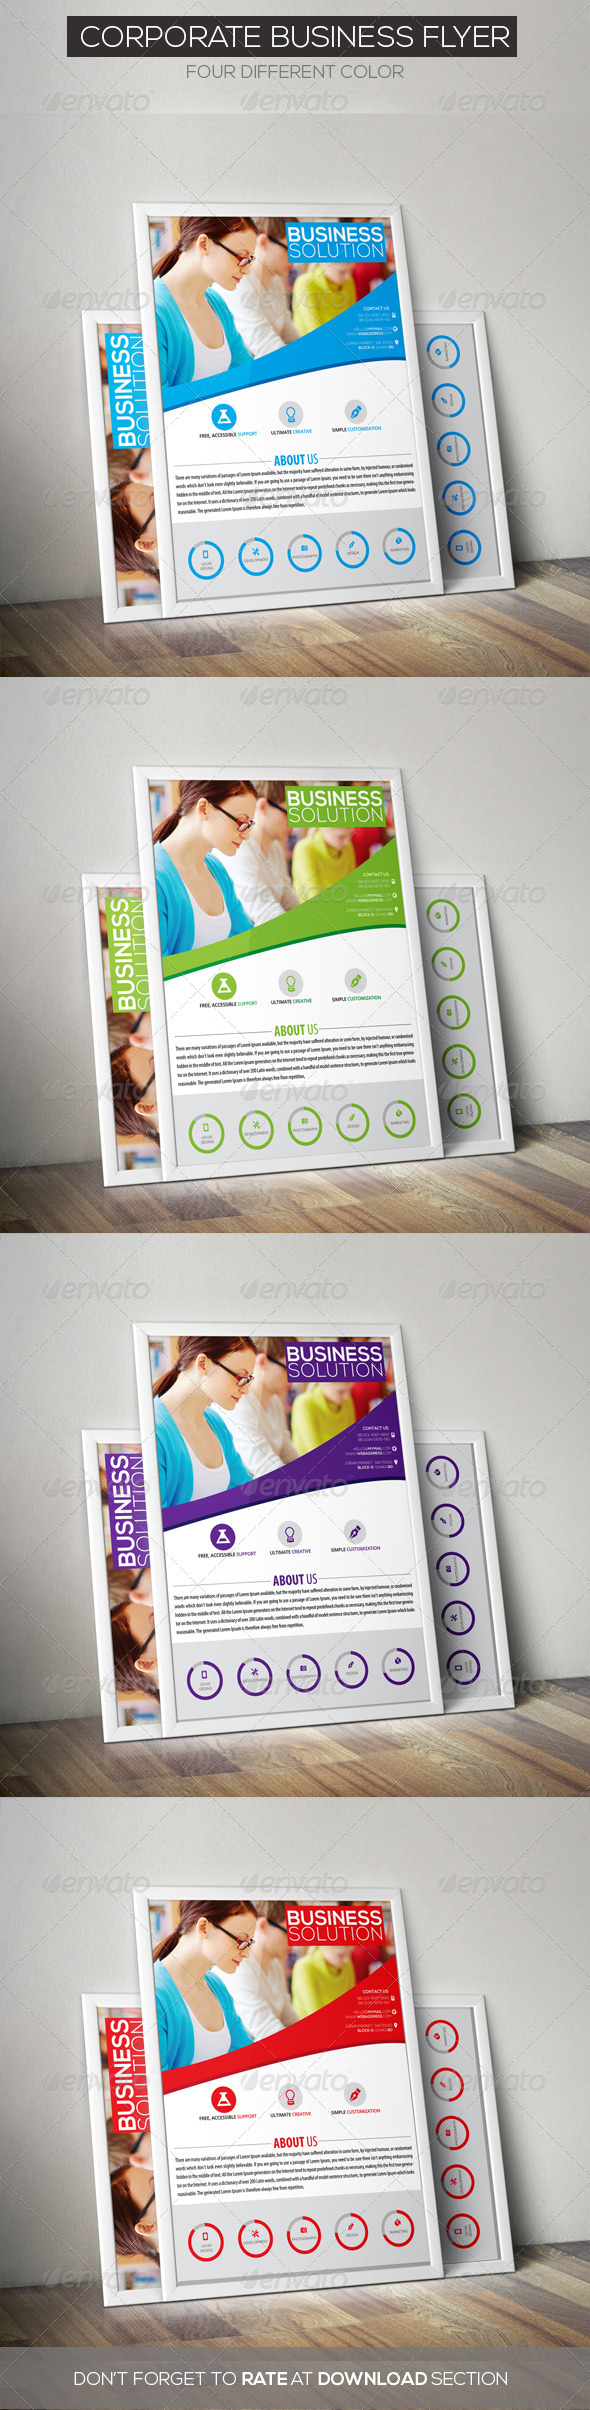 GraphicRiver Corporate Business Flyer 6999766